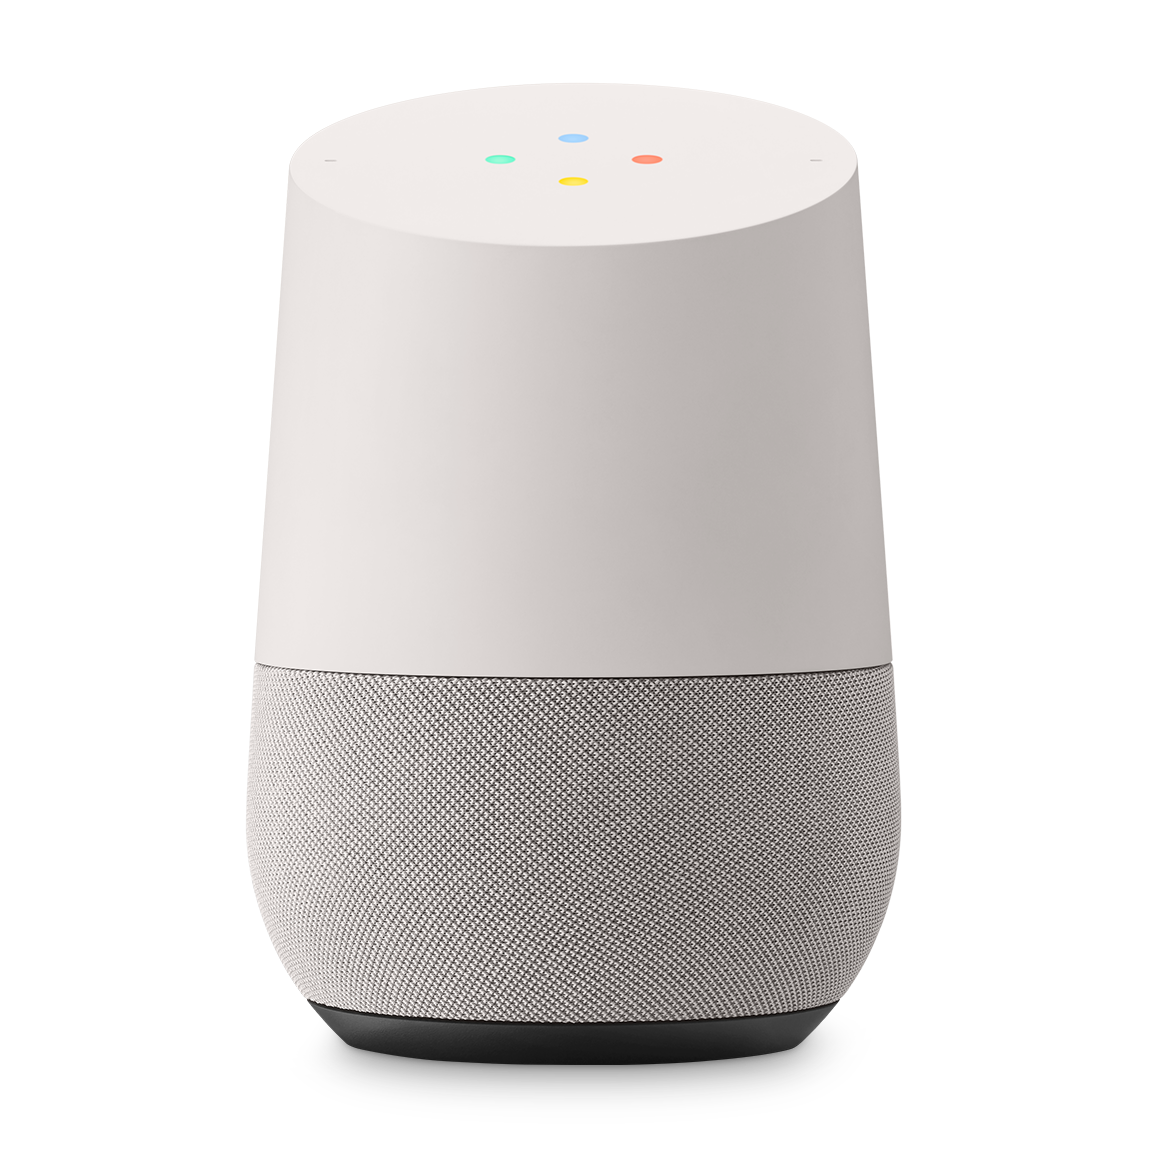 jeffontheroad-gift-ideas-home-google-home